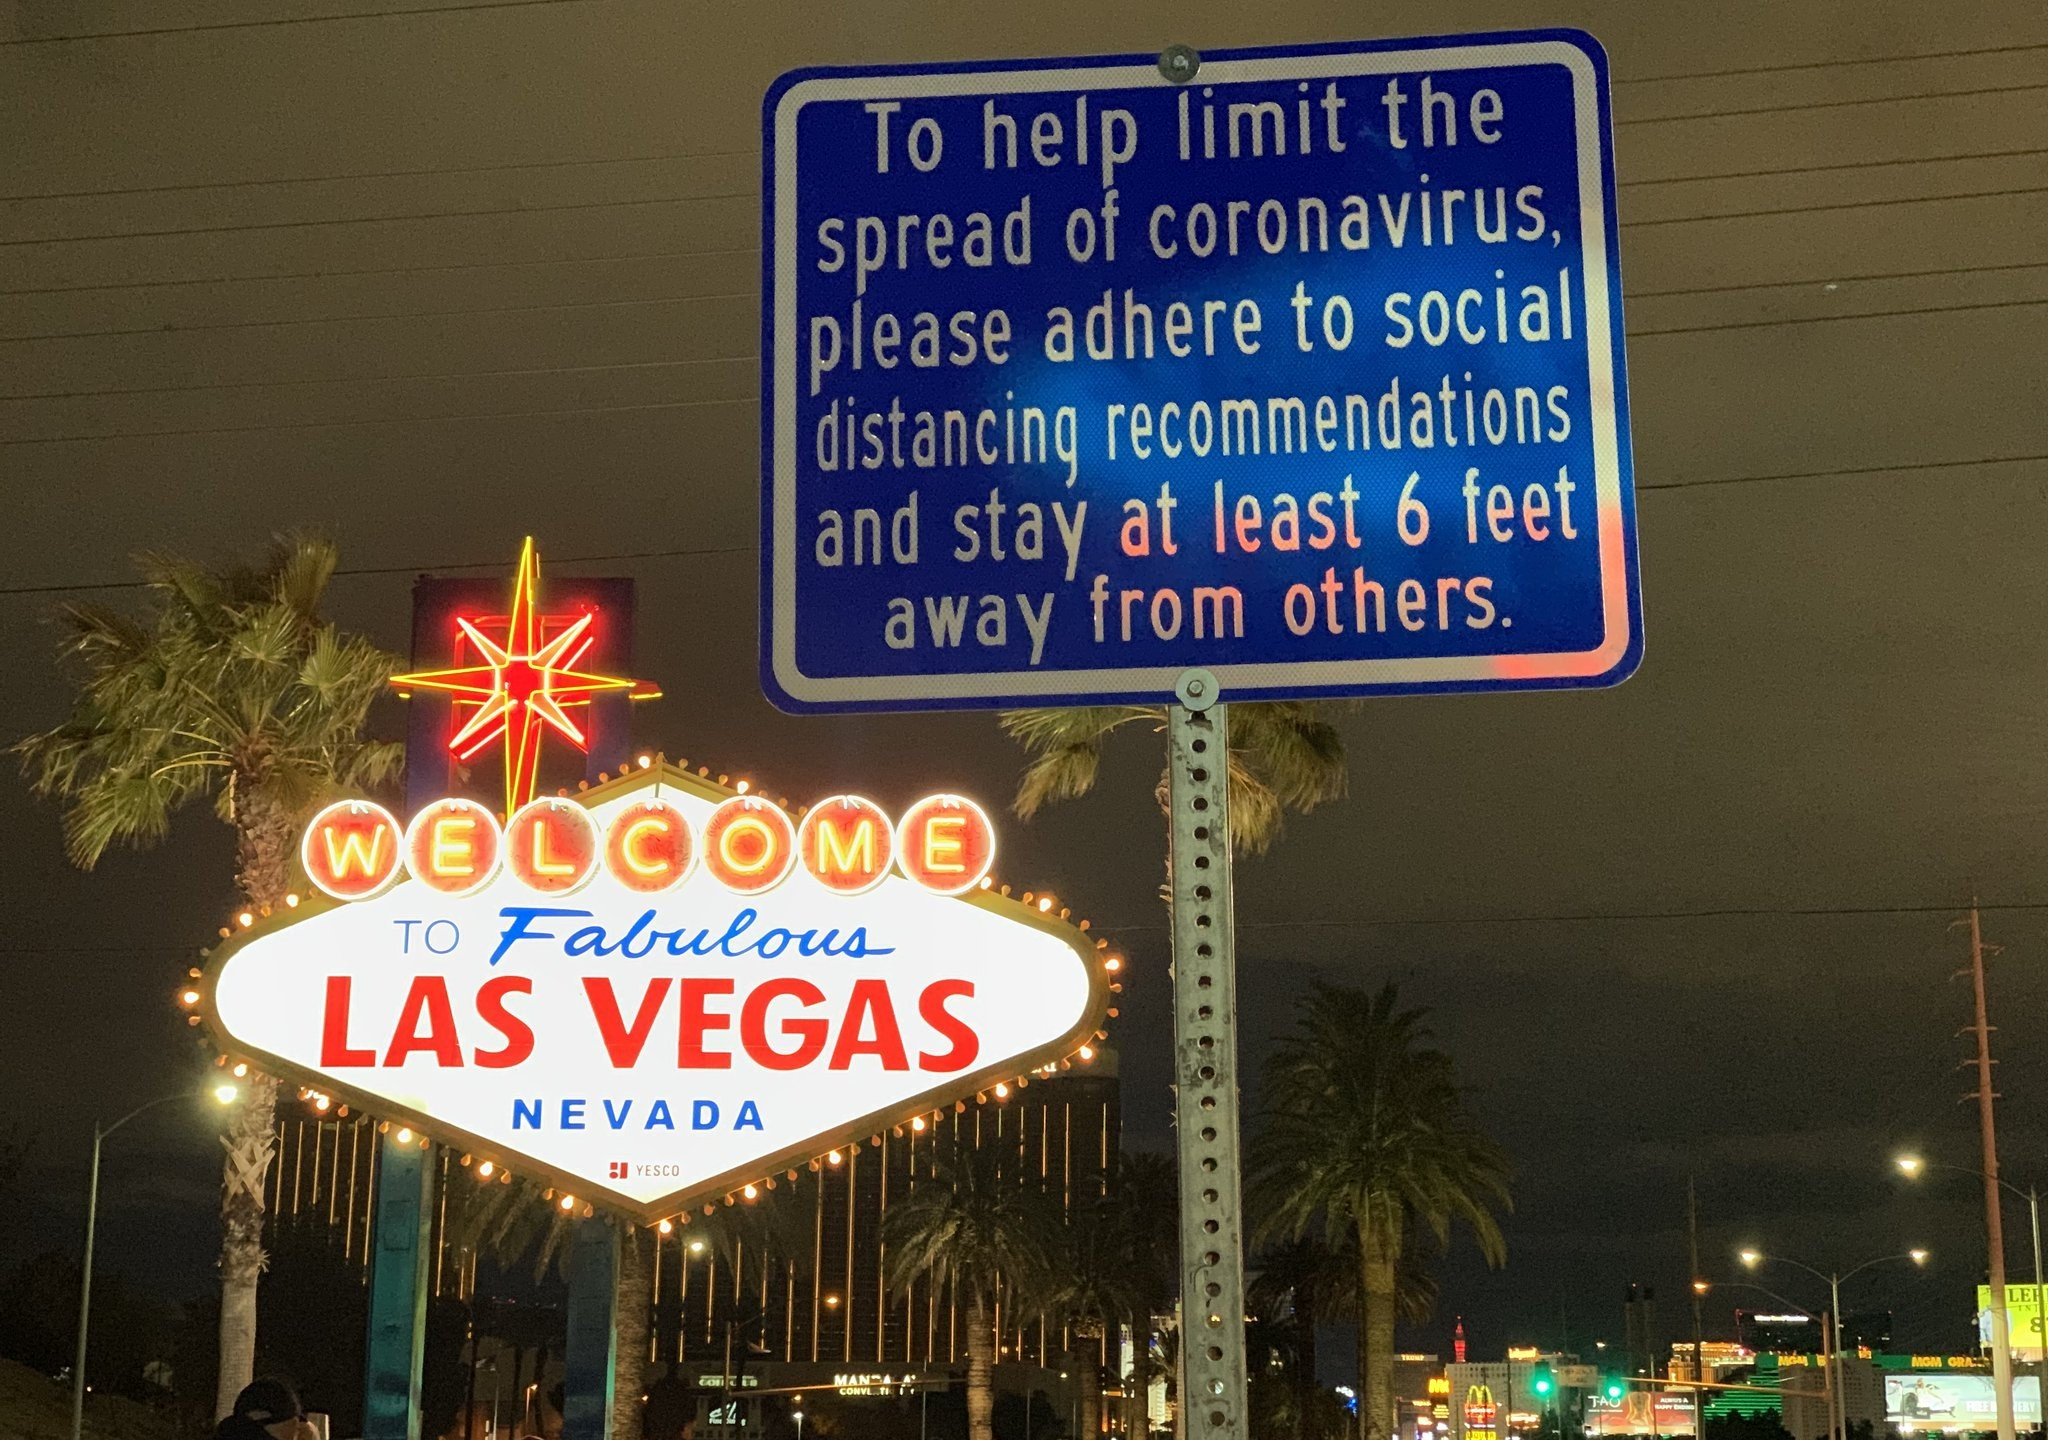 Tourism Hospitality Workers Will Light Up Las Vegas In Car Parade Down The Strip Klas